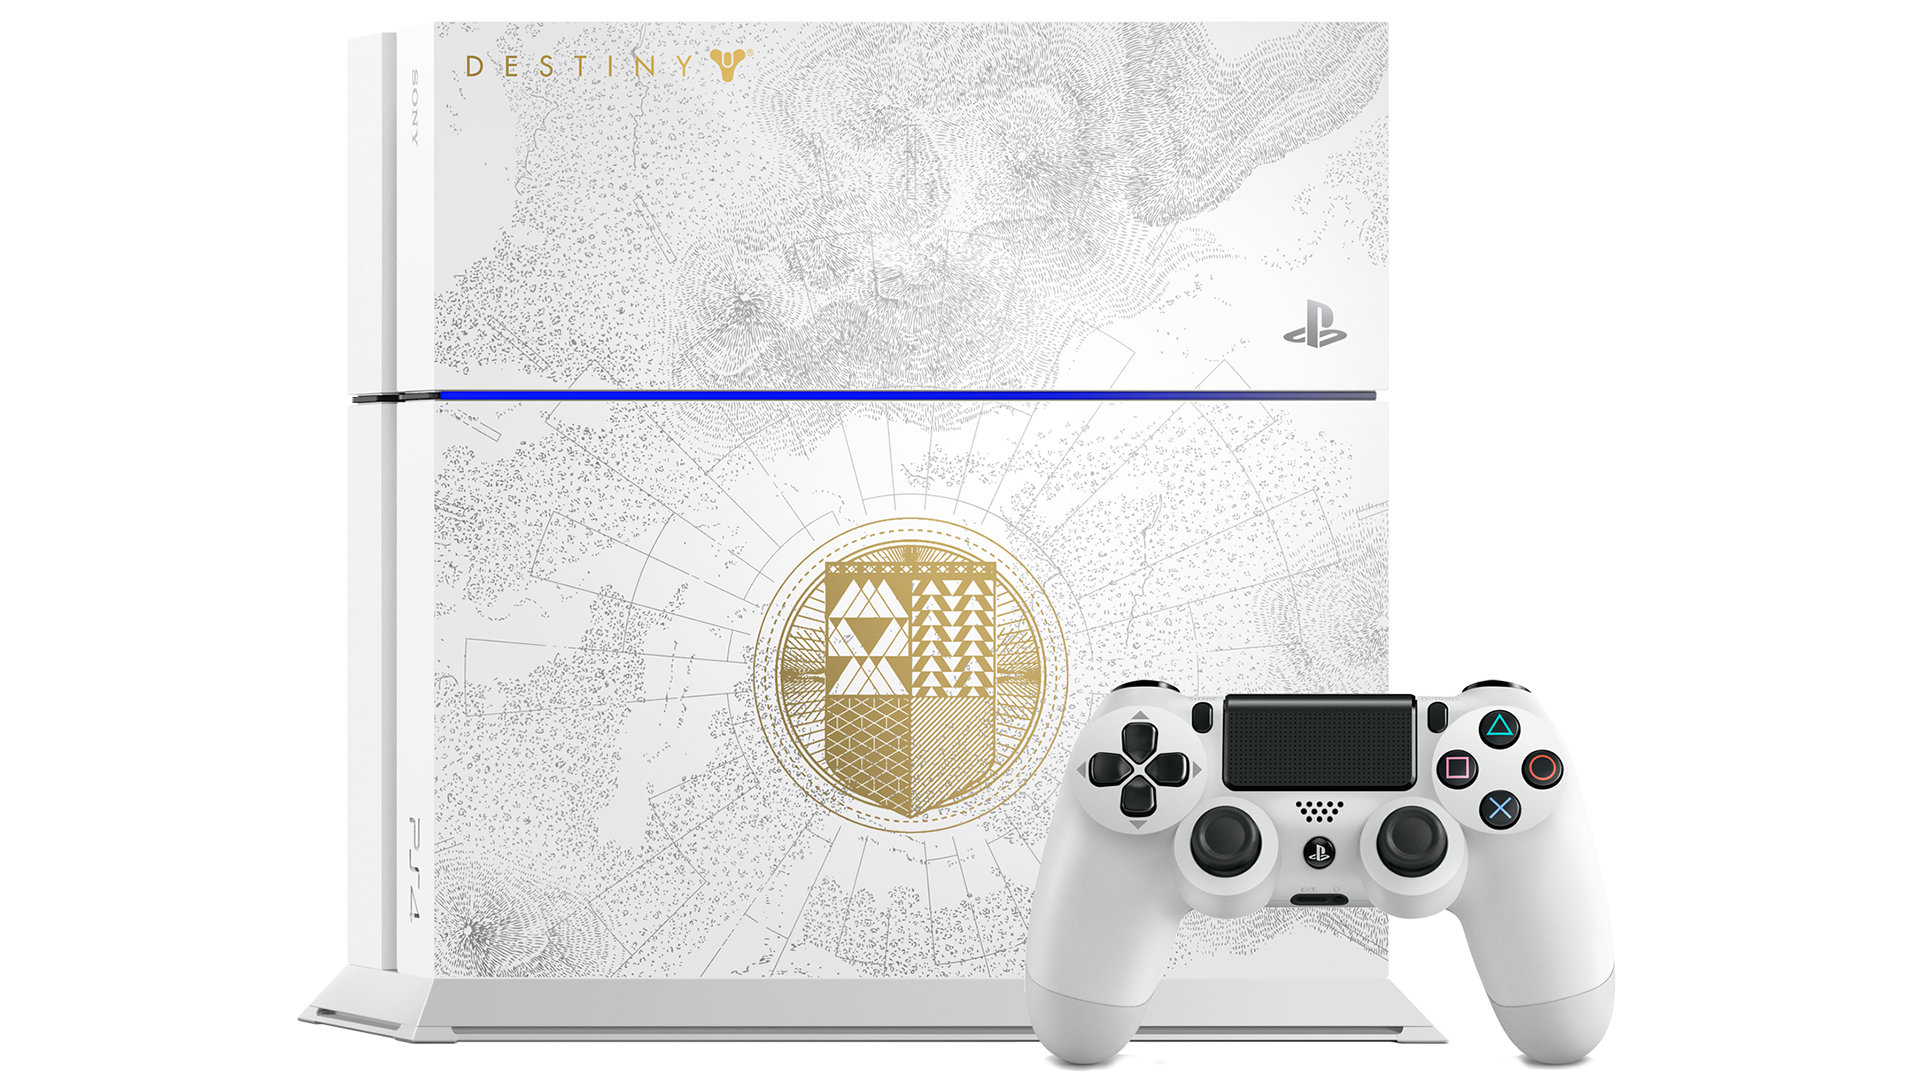 .MISC: RAFFLE TICKET - DESTINY PS4 CONSOLE (1 TICKET)